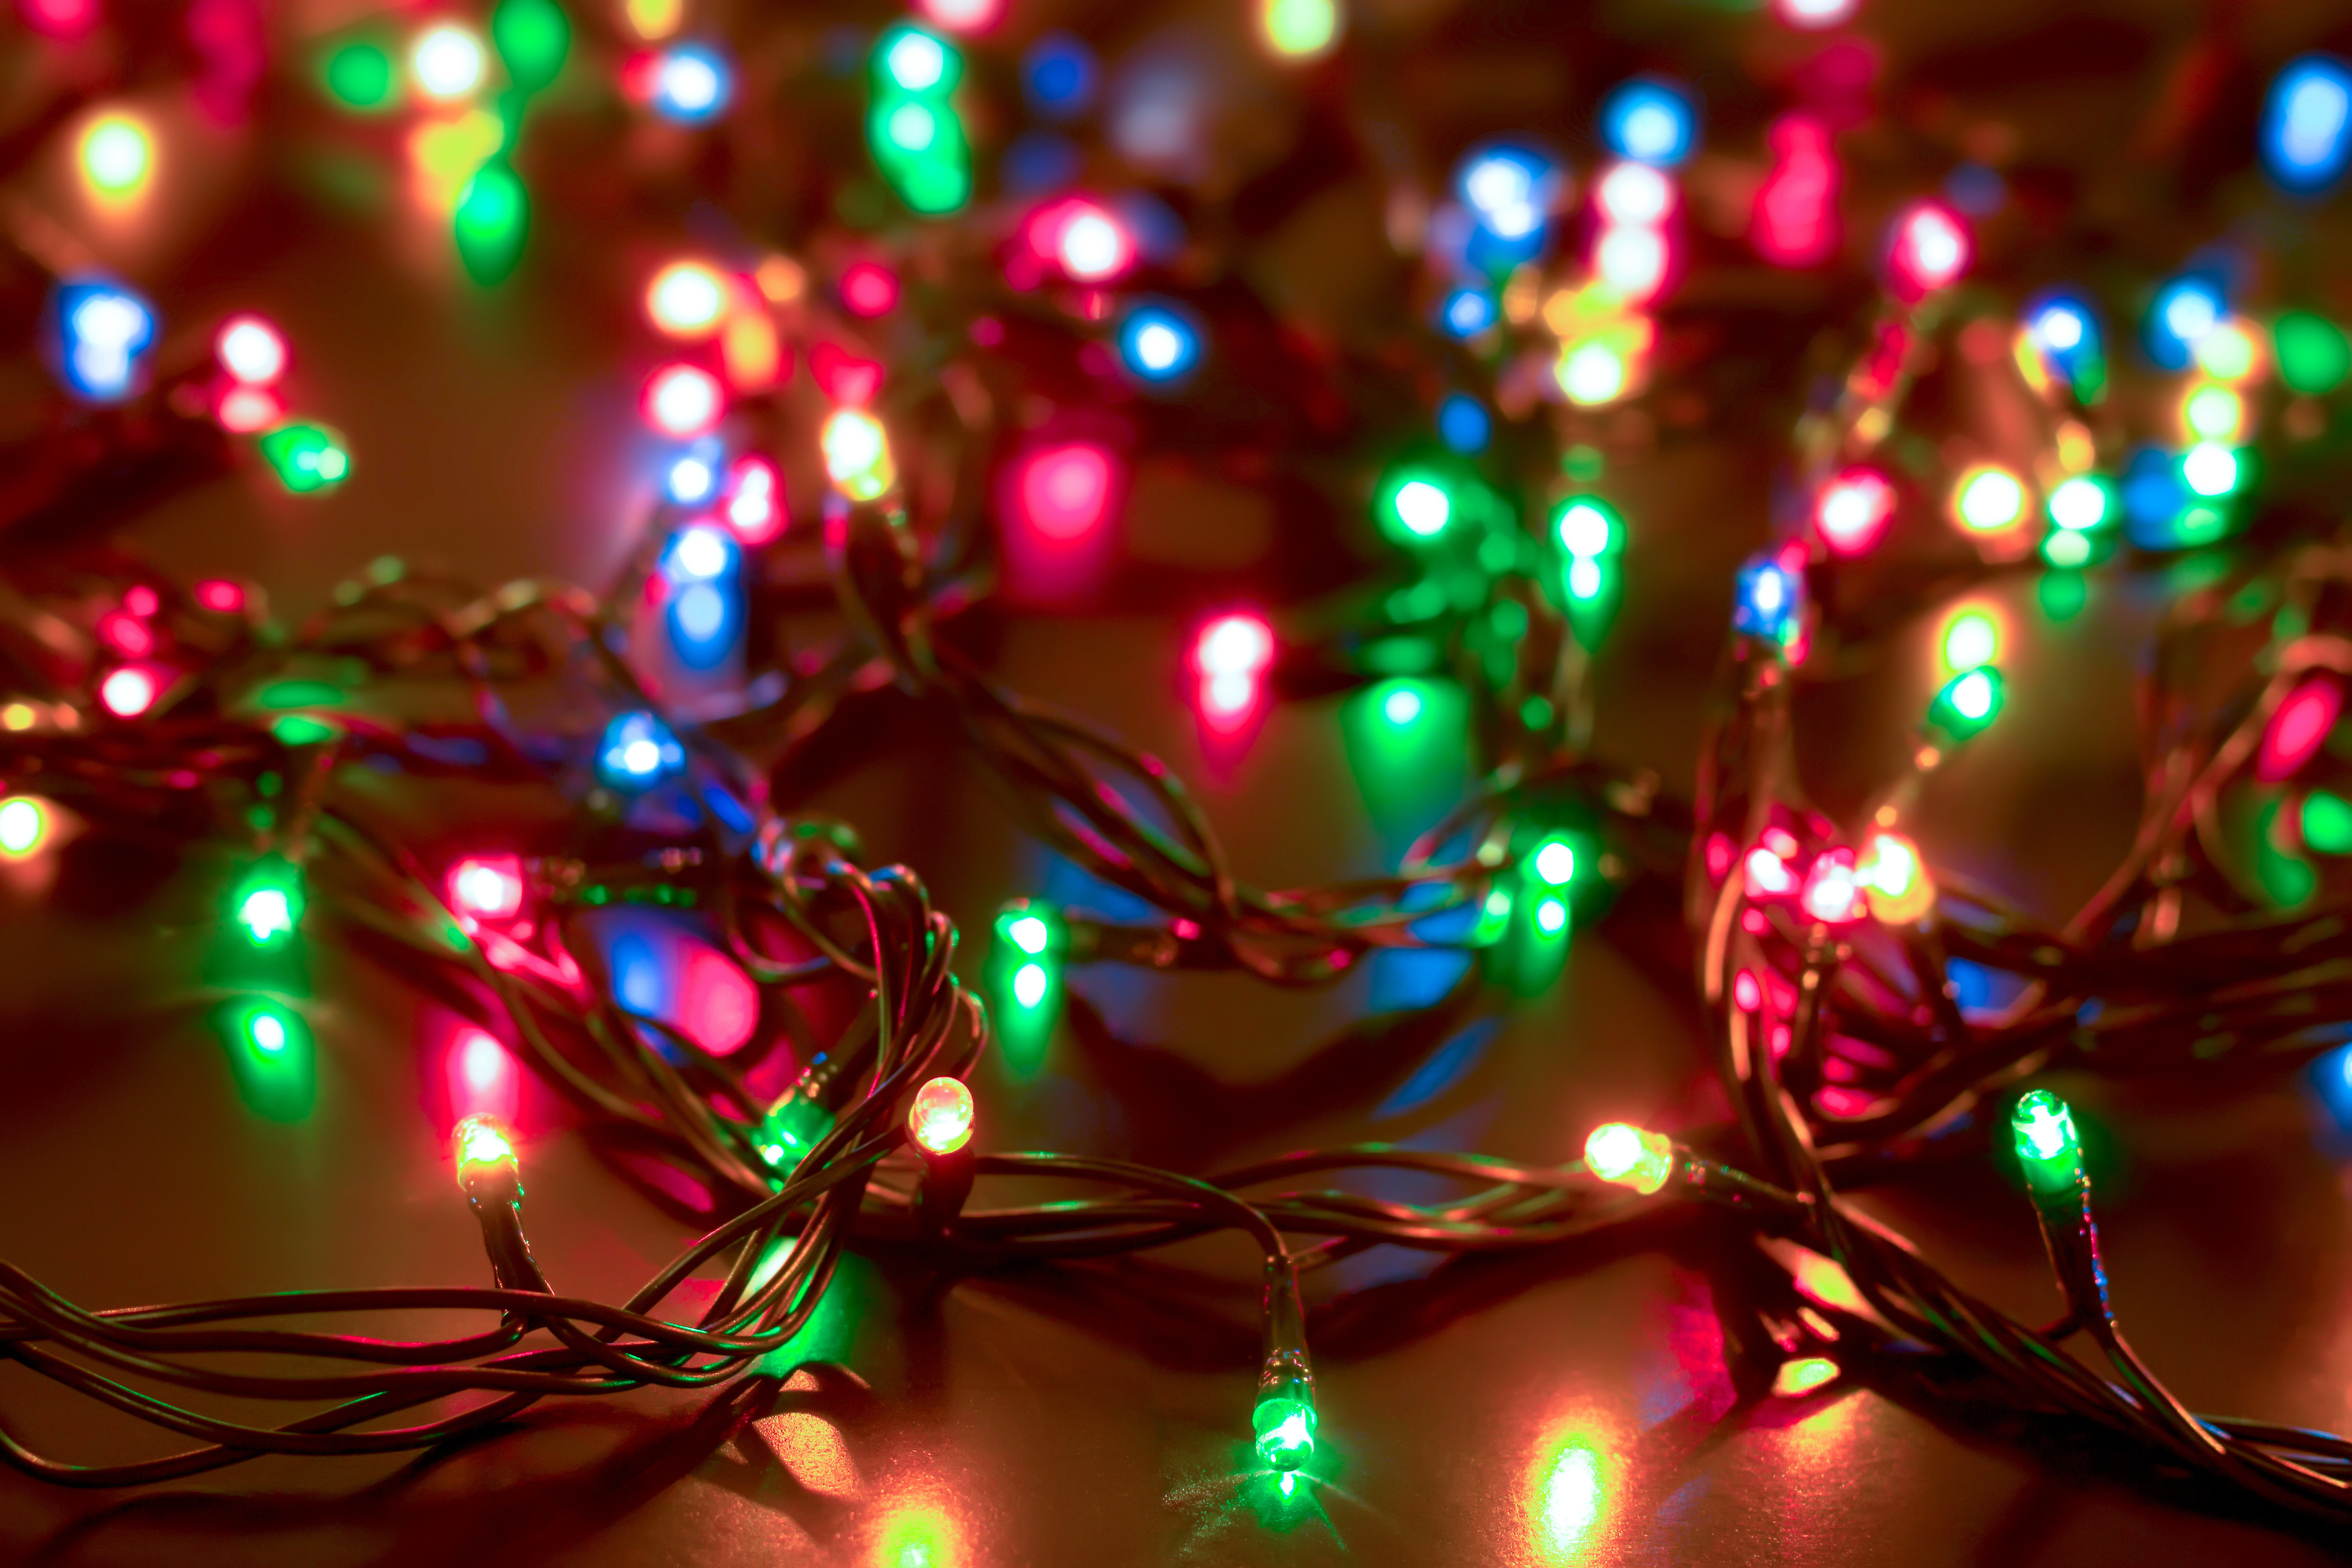 Christmas Lights 4k Ultra Hd Wallpaper Background Image